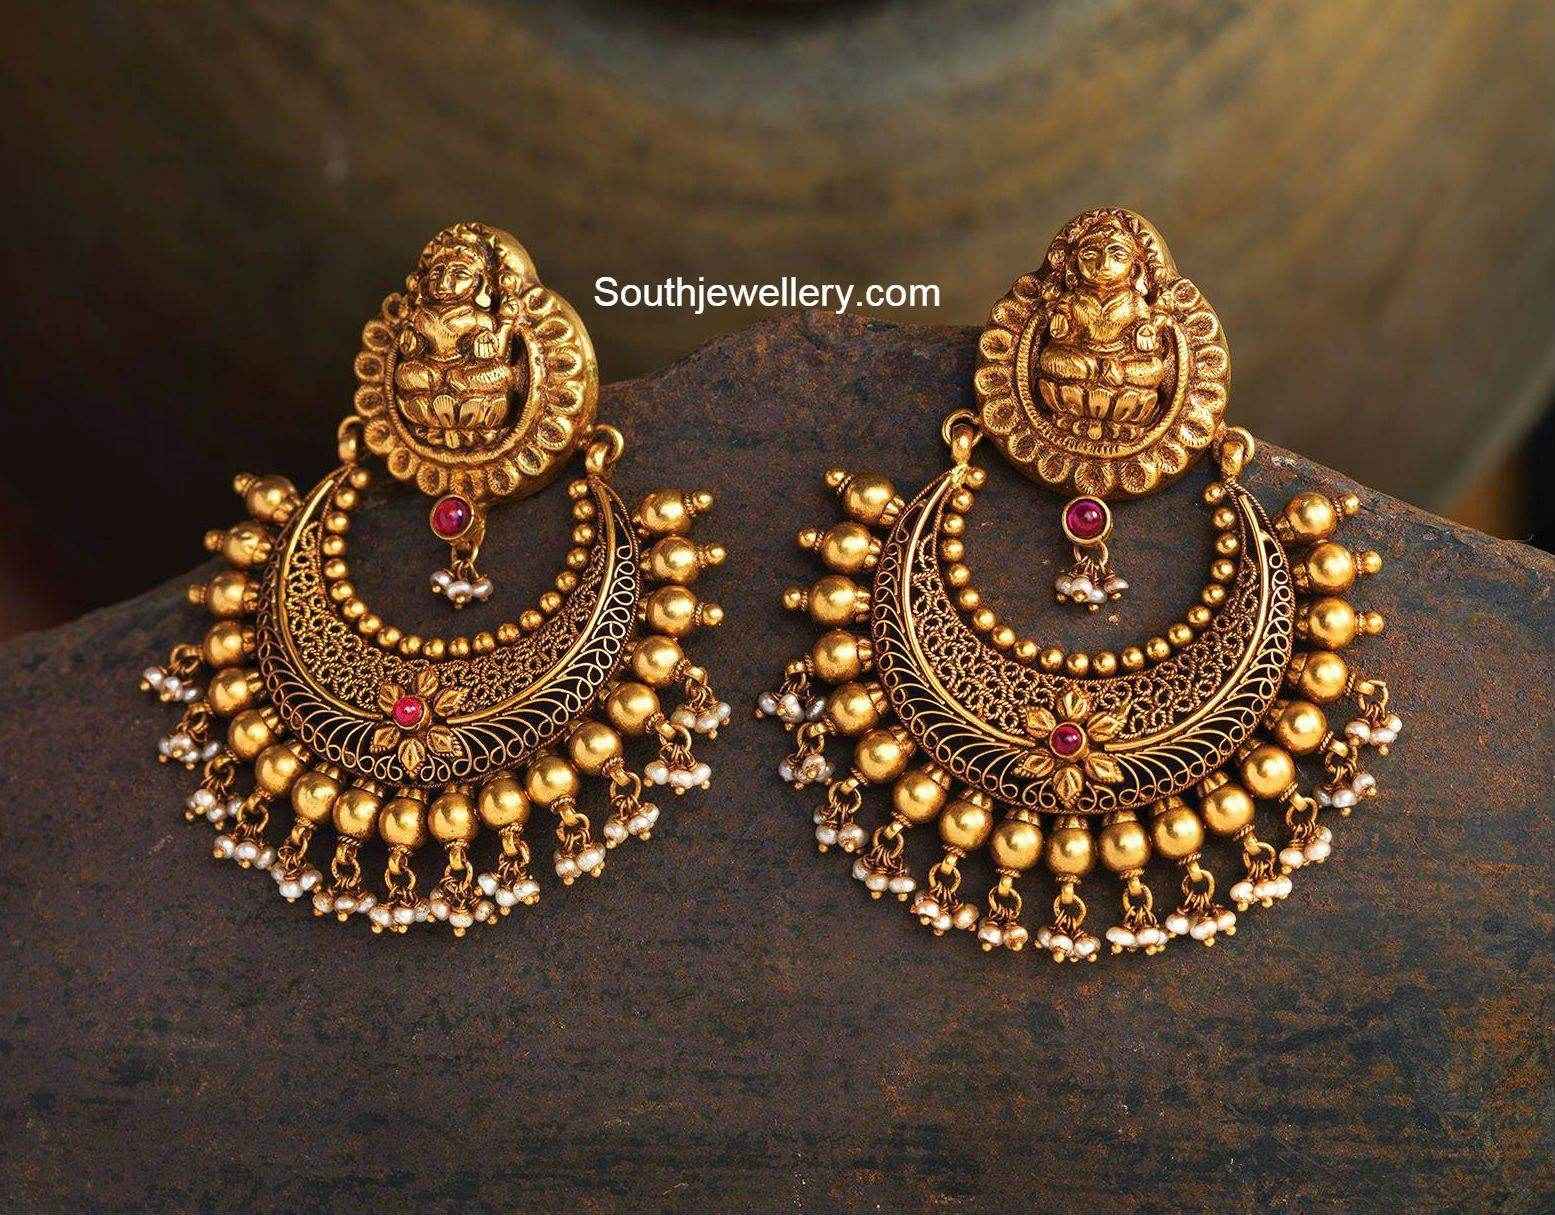 And contemporary gold jhumkas collection by khazana jewellery - Find This Pin And More On Indian Jewelry By Vmadhavi